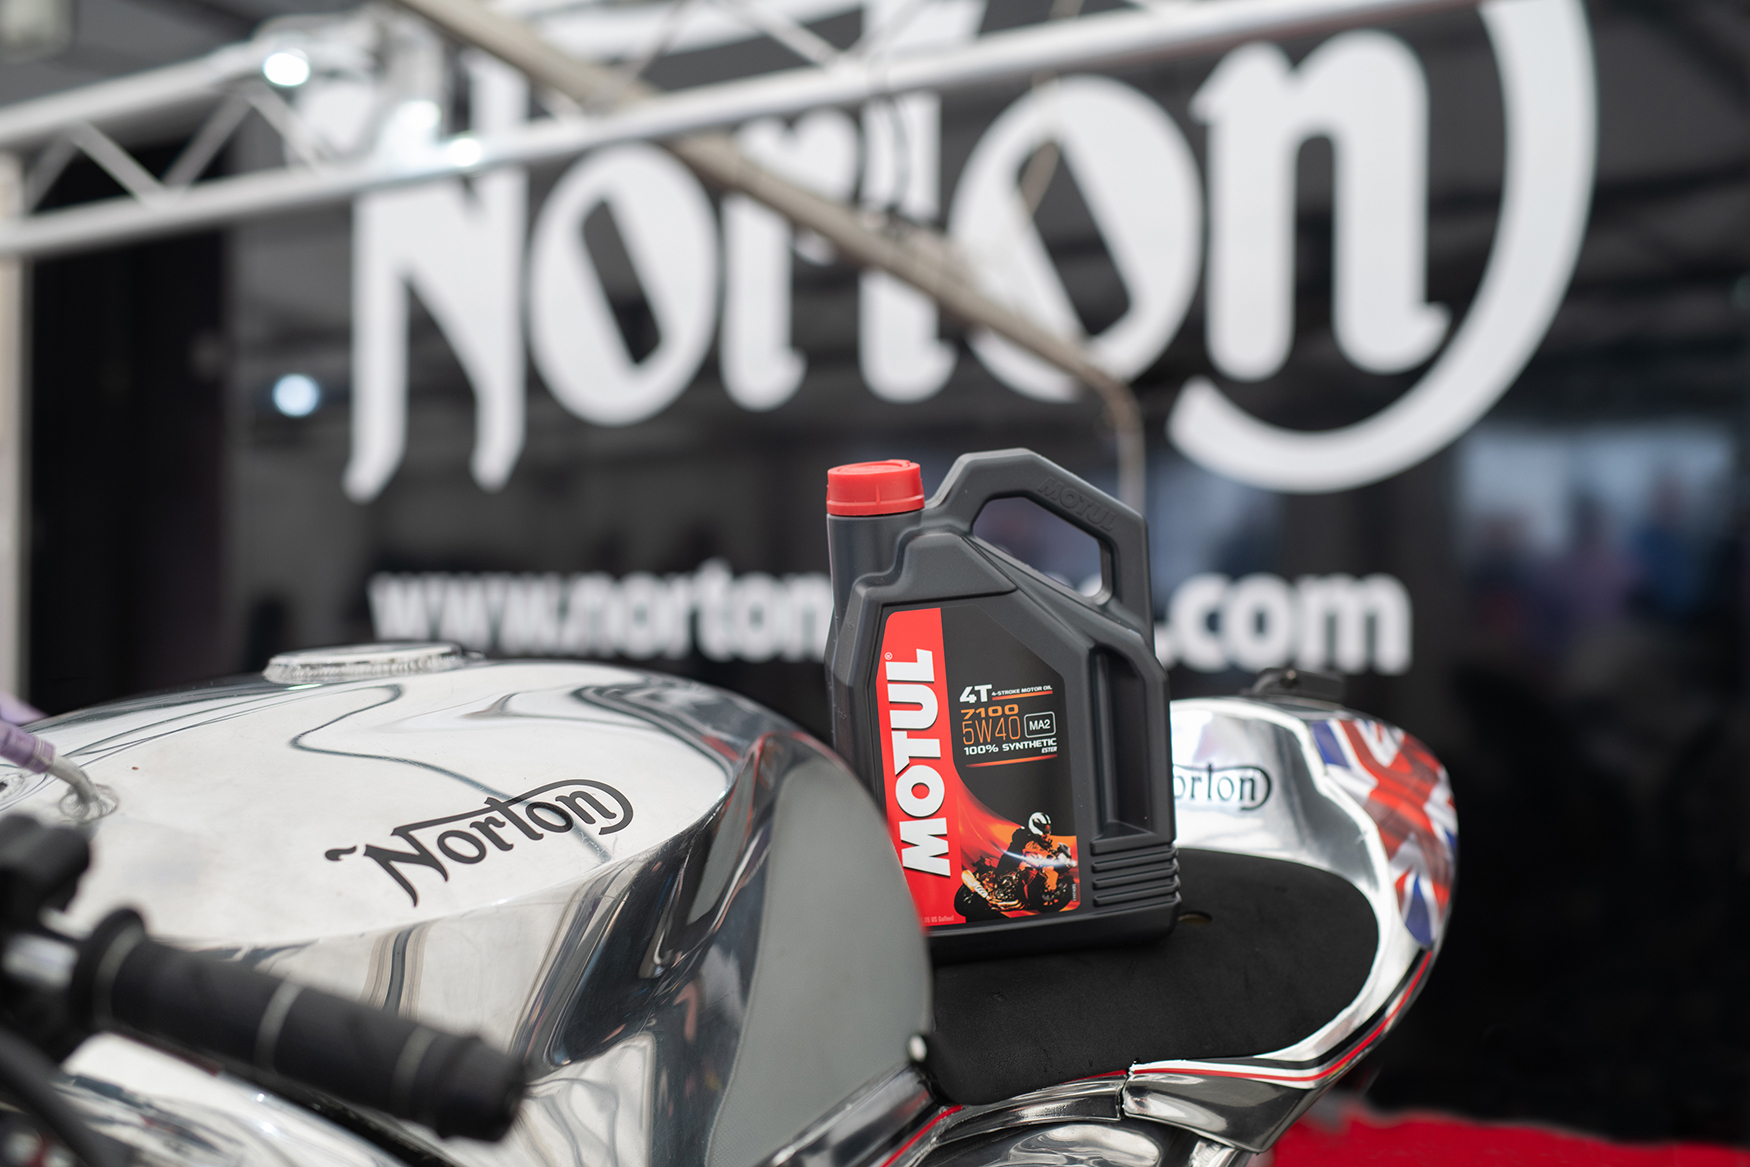 Motul signs an exciting new partnership with Norton